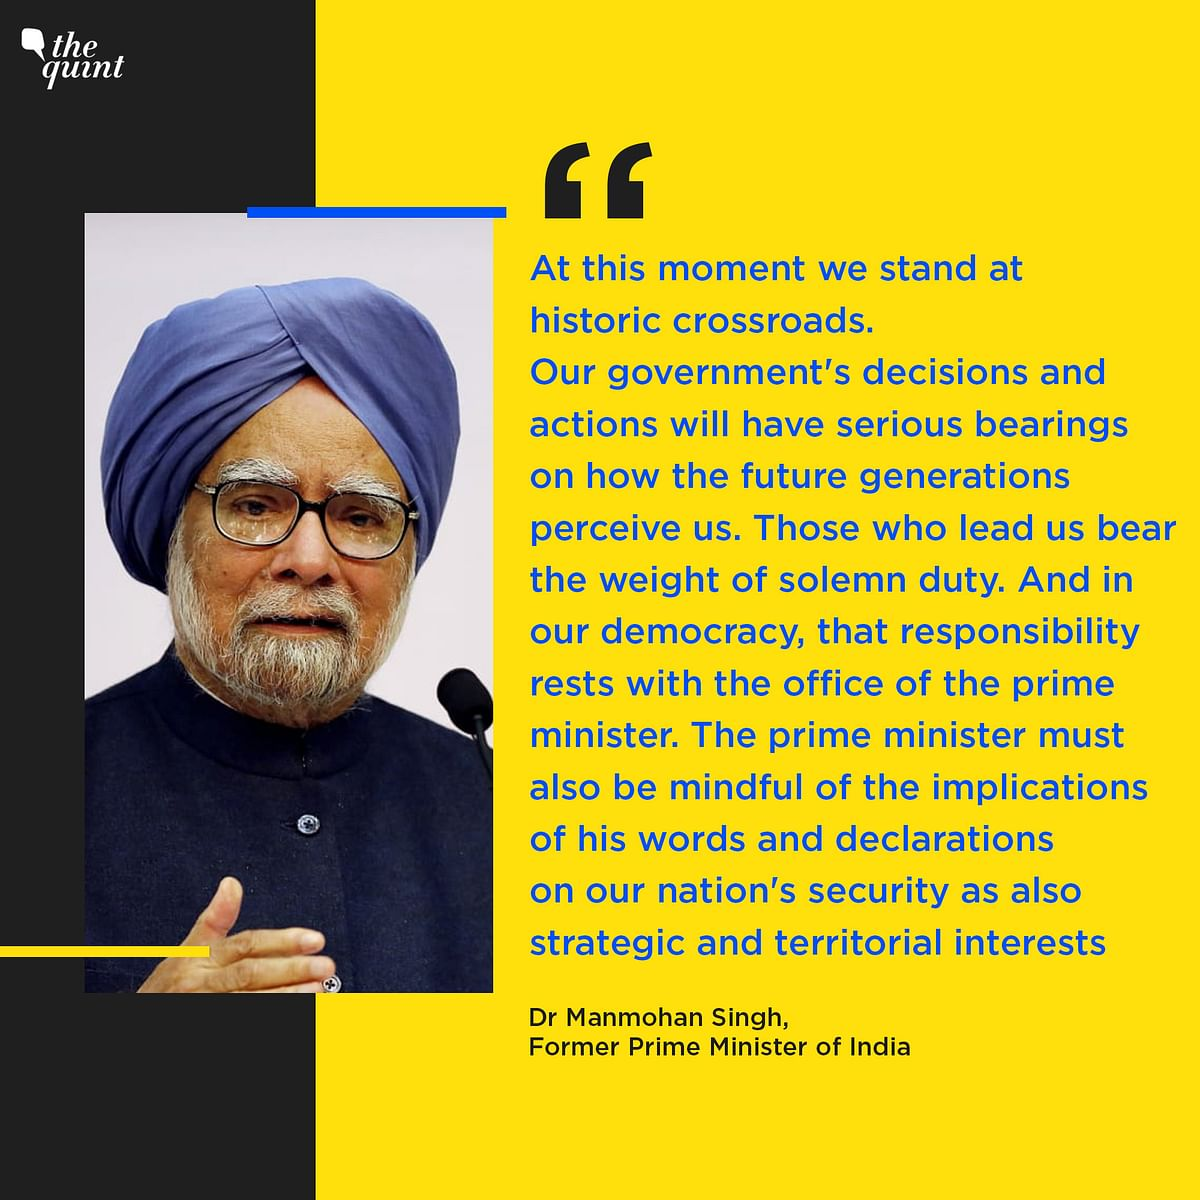 Dr Manmohan Singh, Former Prime Minister of India in a press statement.